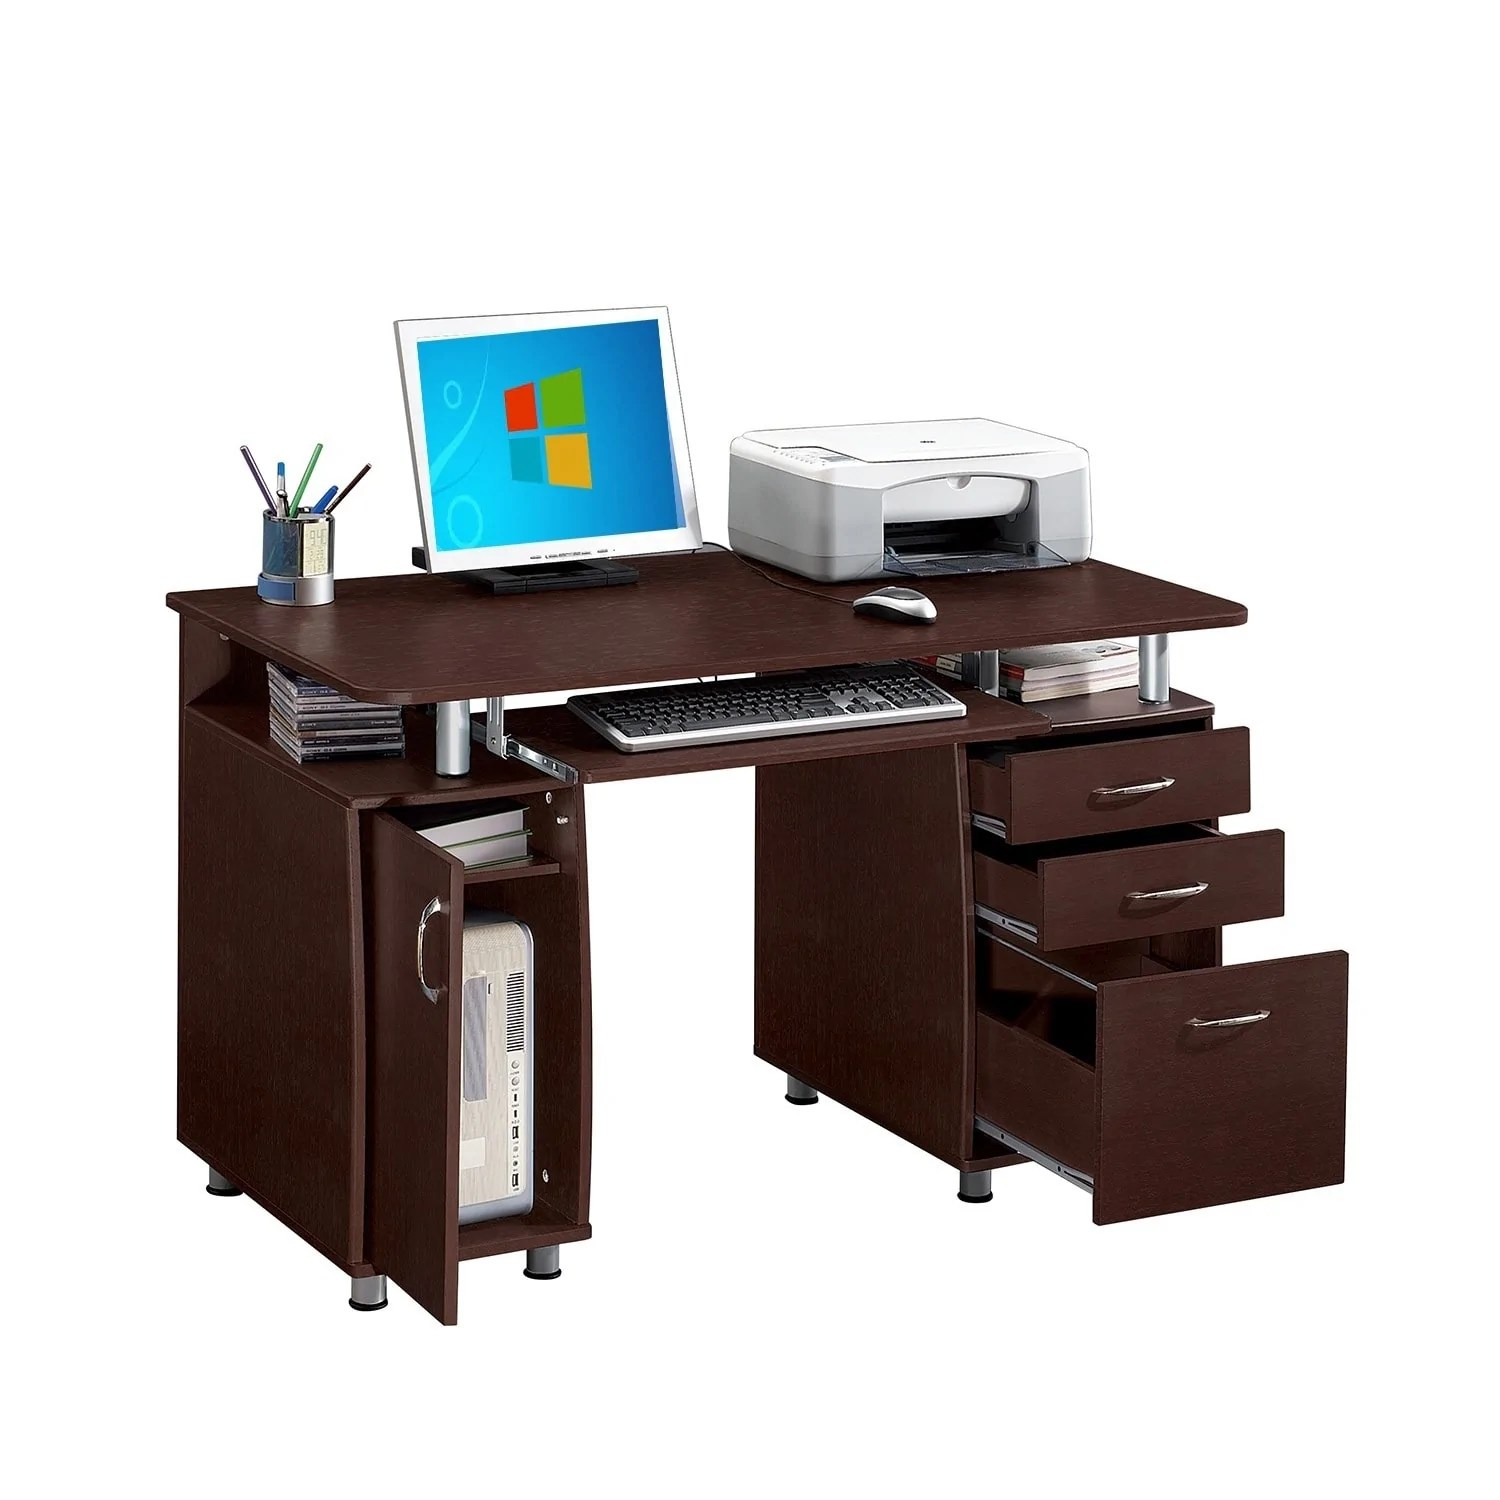 Desk With File Cabinet Multifunctional Office Desk With File Cabinet